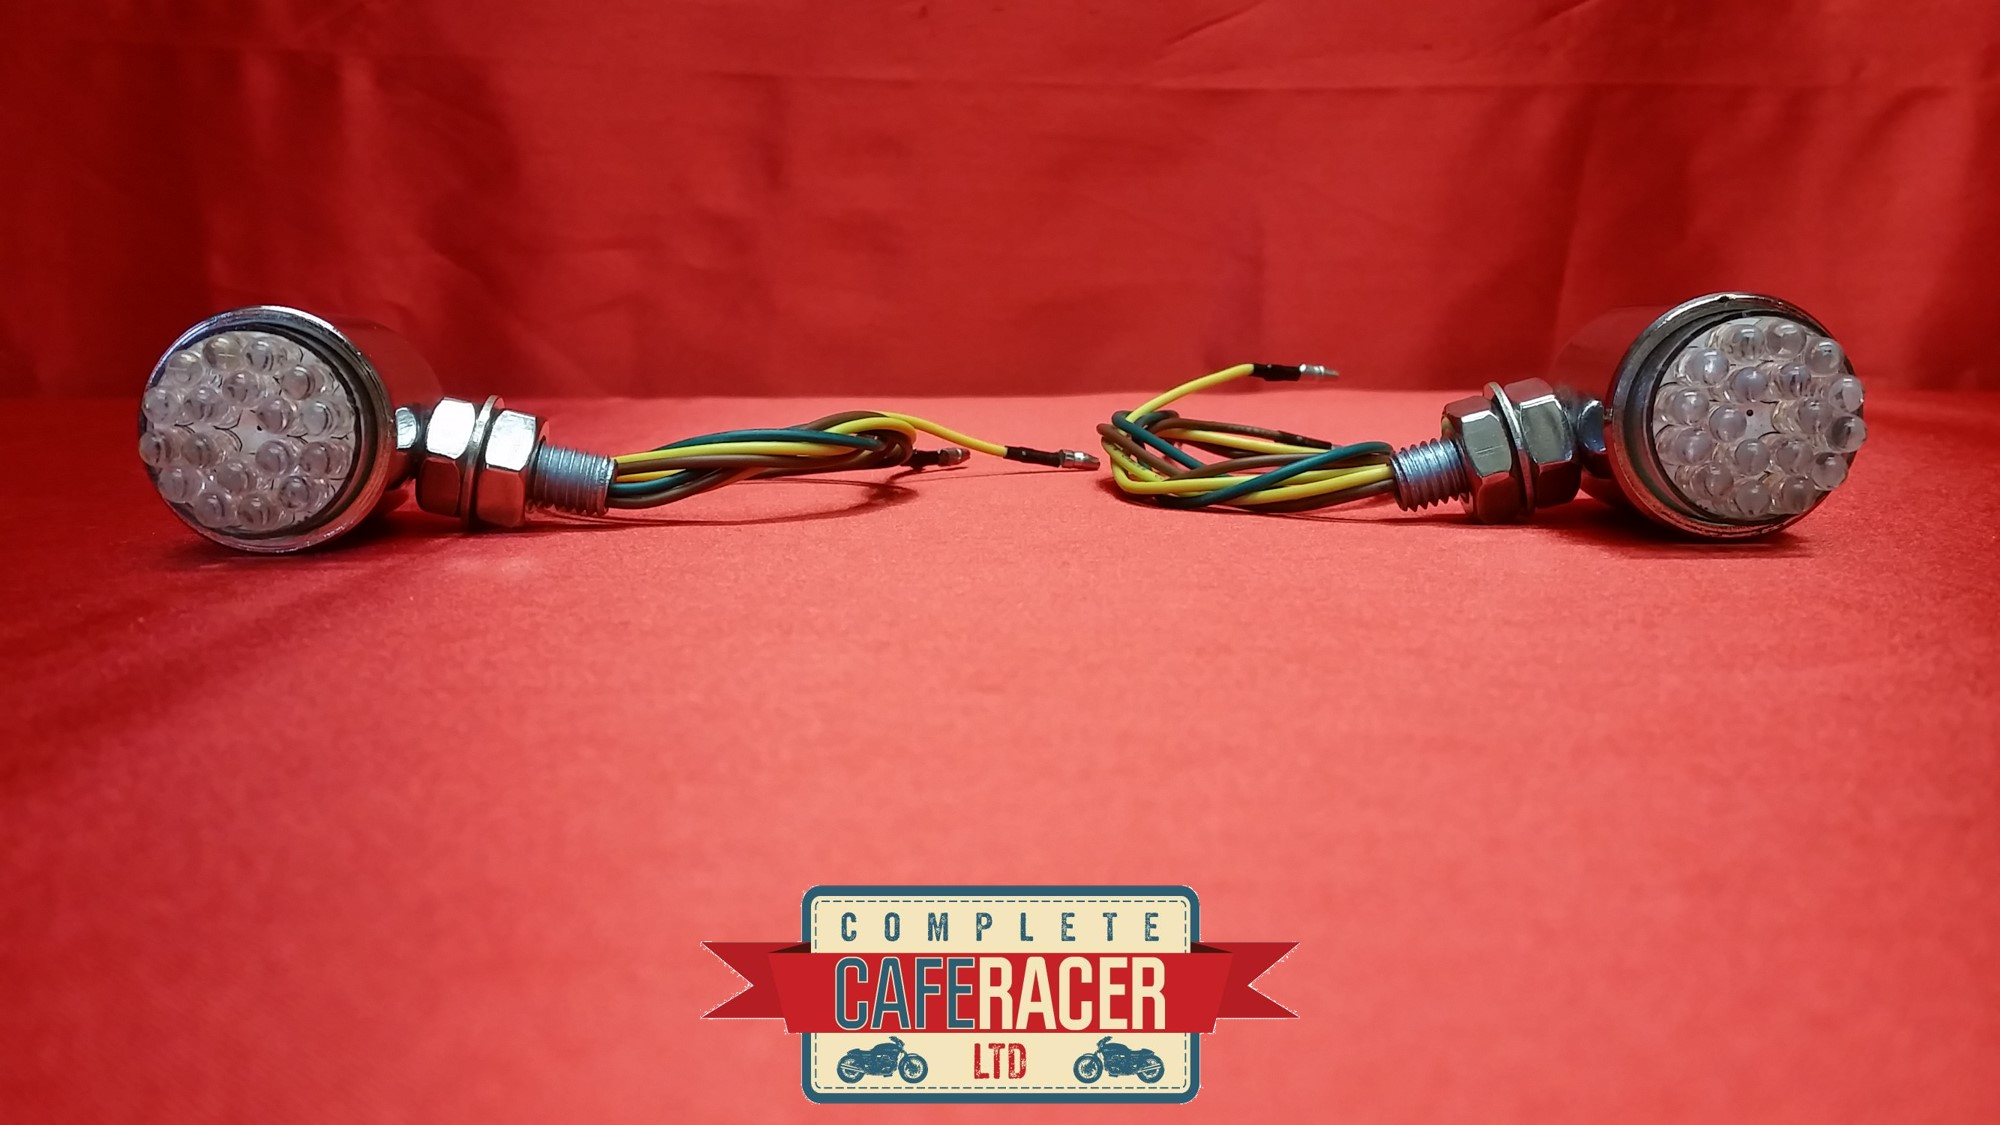 (F4) CAFE RACER LED INDICATORS CHROME METAL CASE WITH CLEAR LED LIGHTS (PAIR)